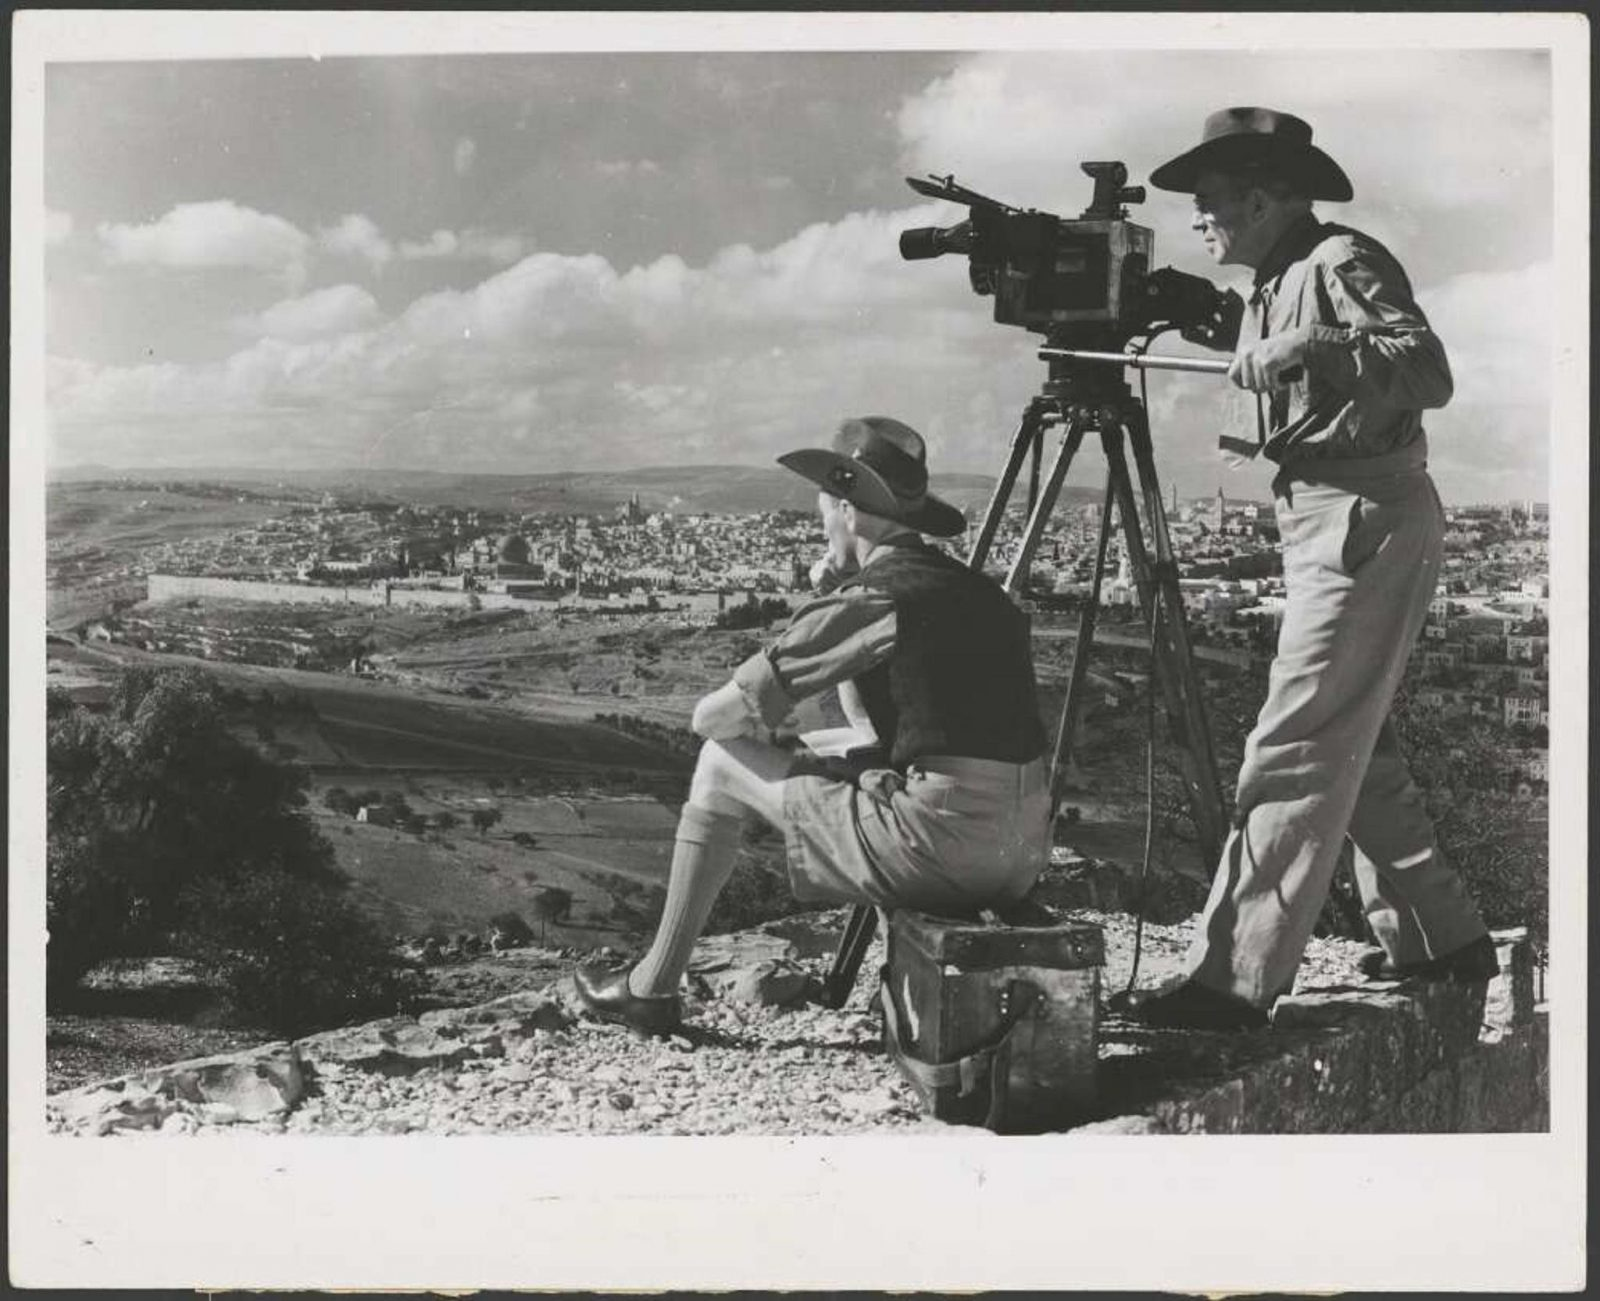 Frank Hurley and Maslyn Williams looking out over the Kidron Valley